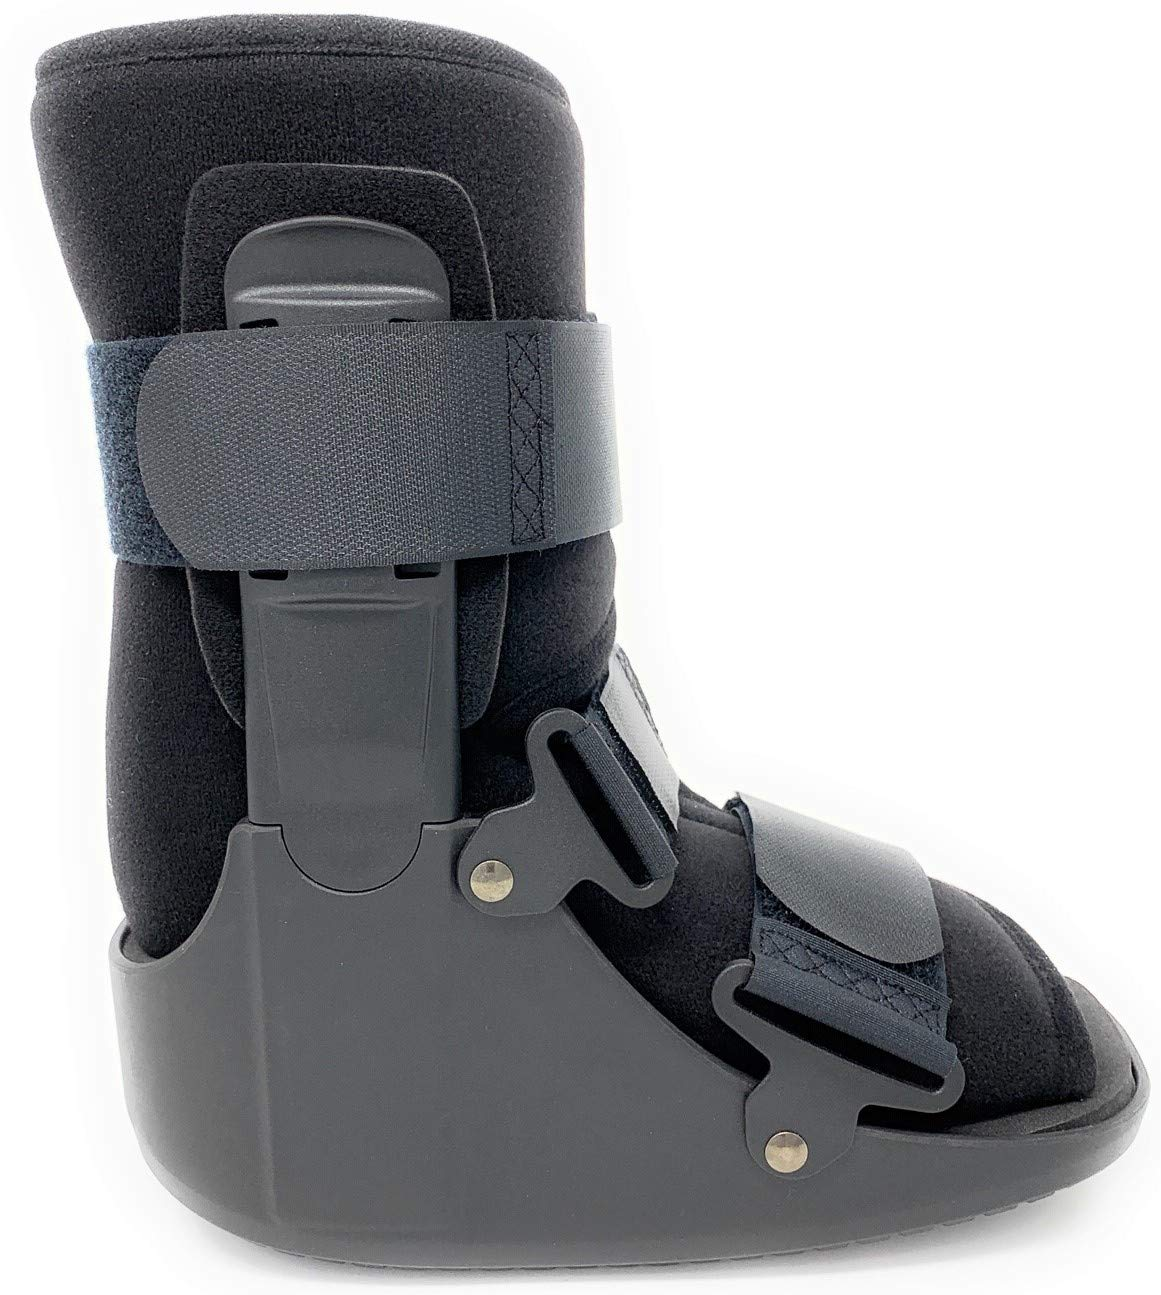 Superior Braces Low Top, Non-Air, Low Profile Medical Orthopedic Walker Boot for Ankle & Foot Injuries (Medium) by SB SUPERIORBRACES